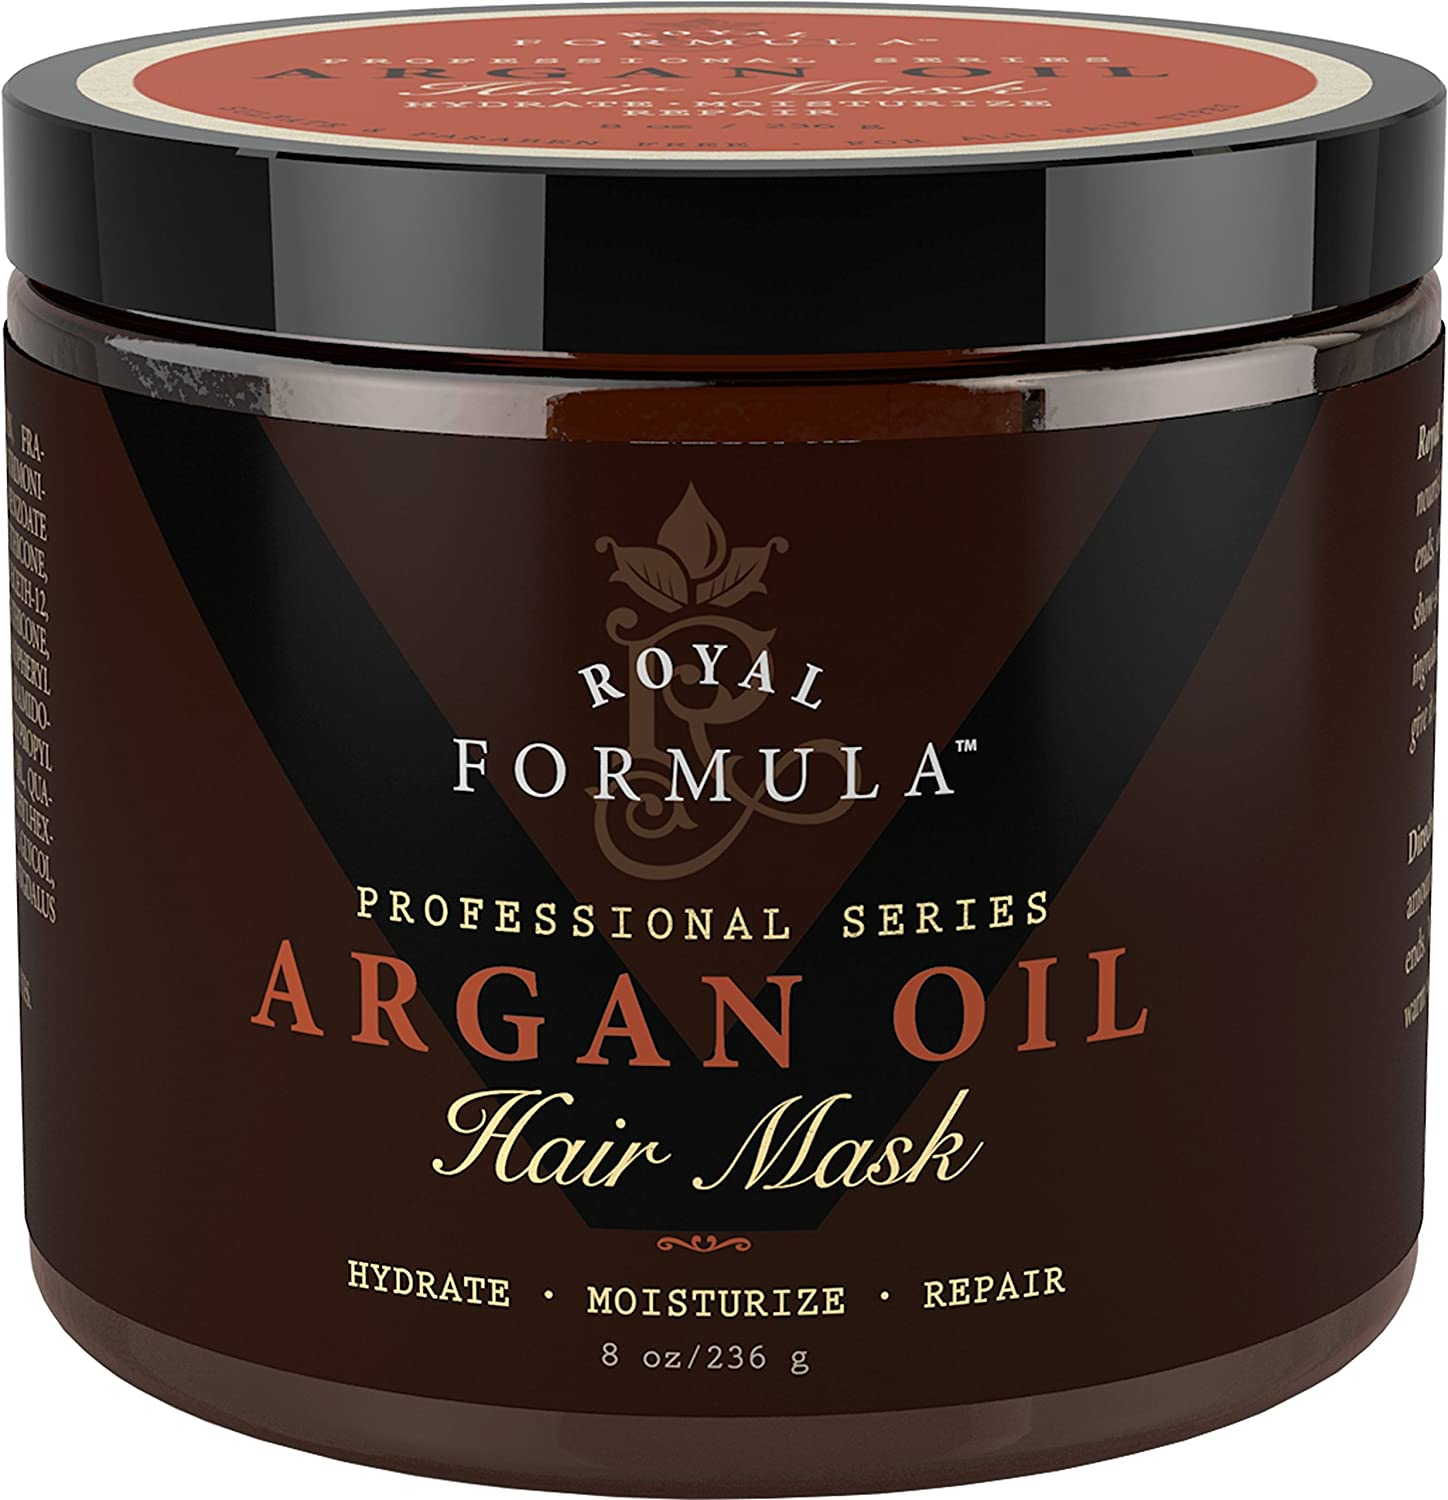 Argan Oil Hair Mask, 100% ORGANIC Argan & Almond Oils - Deep Conditioner, Hydrating Hair Treatment Therapy, Repair Dry Damaged, Color Treated & Bleached Hair - Hydrates & Stimulates Hair Growth, 8 Oz Natures Potent